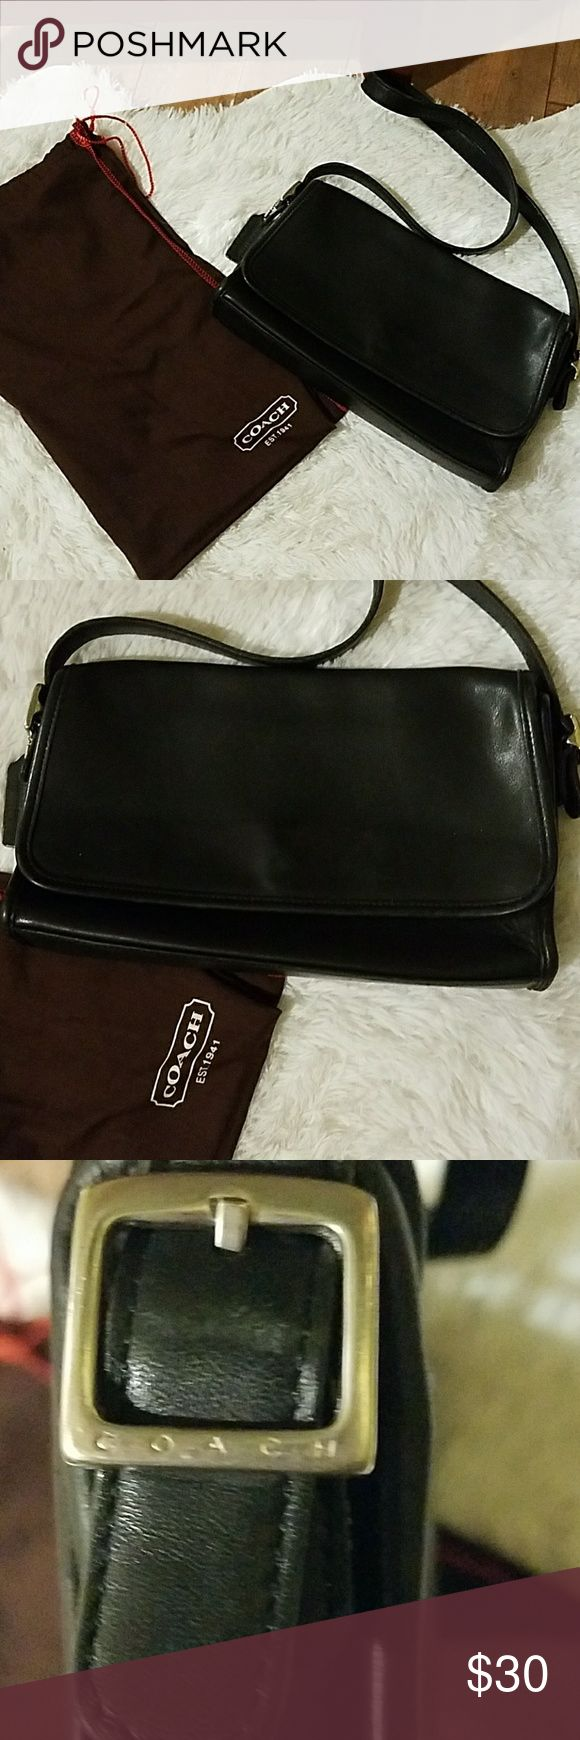 Coach purse with dust bag This vintage black coach bag is in good condition the hardware is Silver the coach tag is attached, this purse has  one outer compartment in the back and one packet with the zipper in the inside , small signs of wear to the corners and inside, the purse has some scratches very light , the purse also comes with a coach dust bag. Coach Bags Shoulder Bags